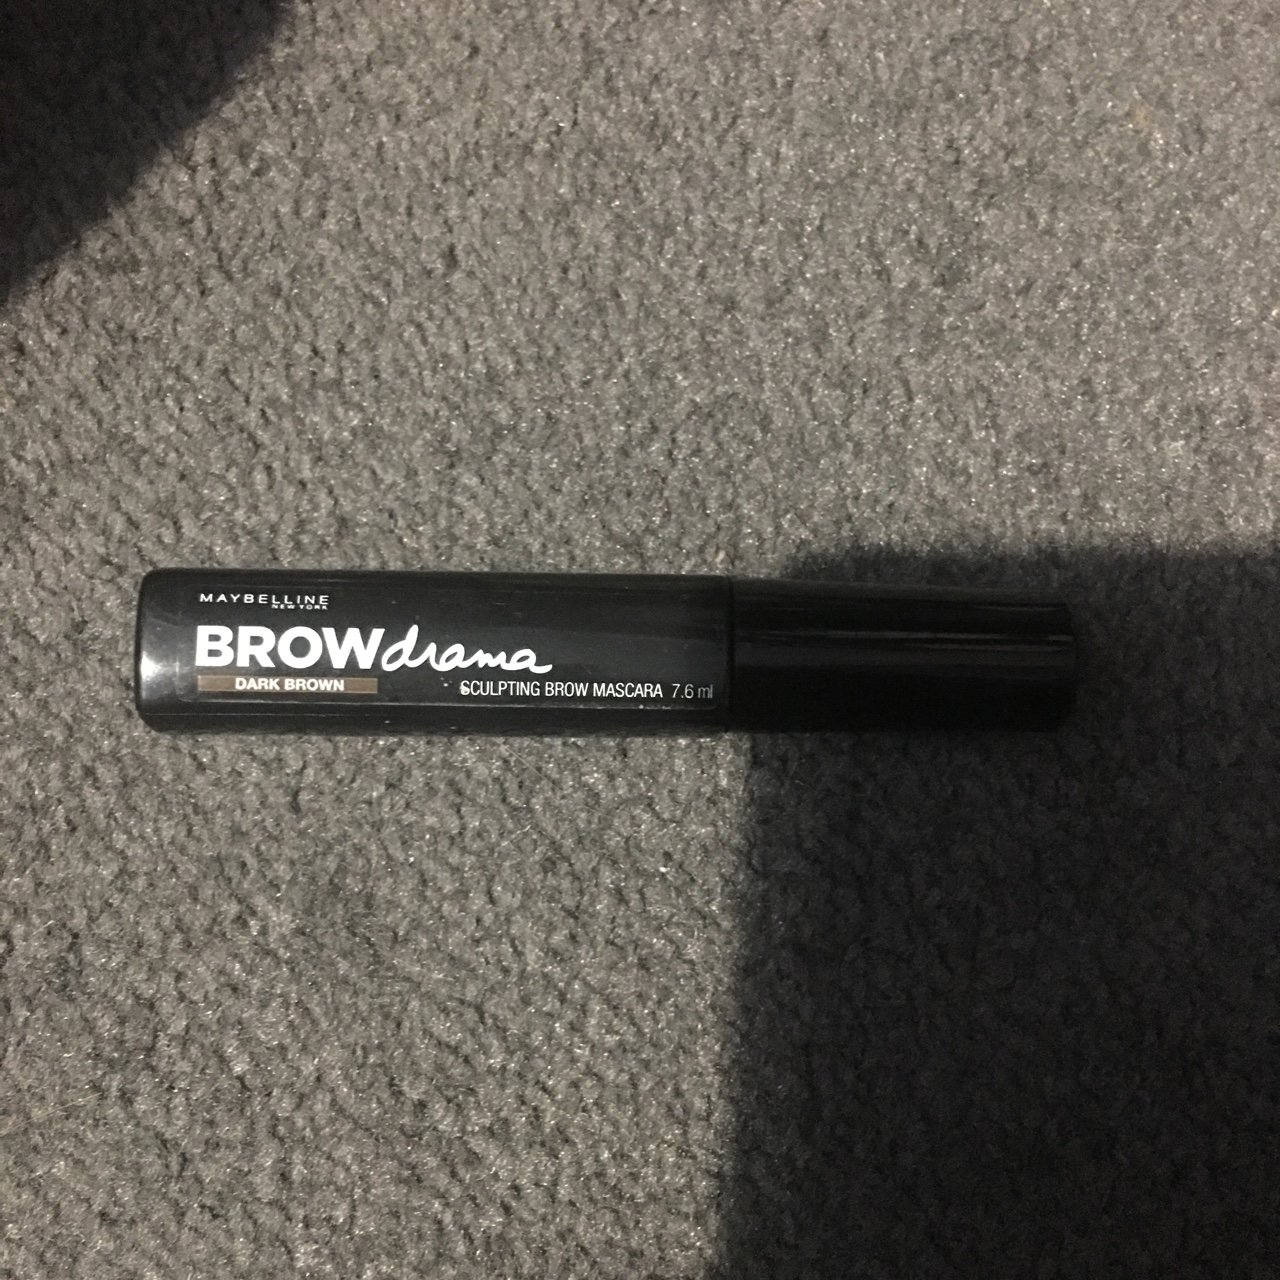 5b1ecdea65e Maybelline brow mascara dark brown new never used be took - Depop